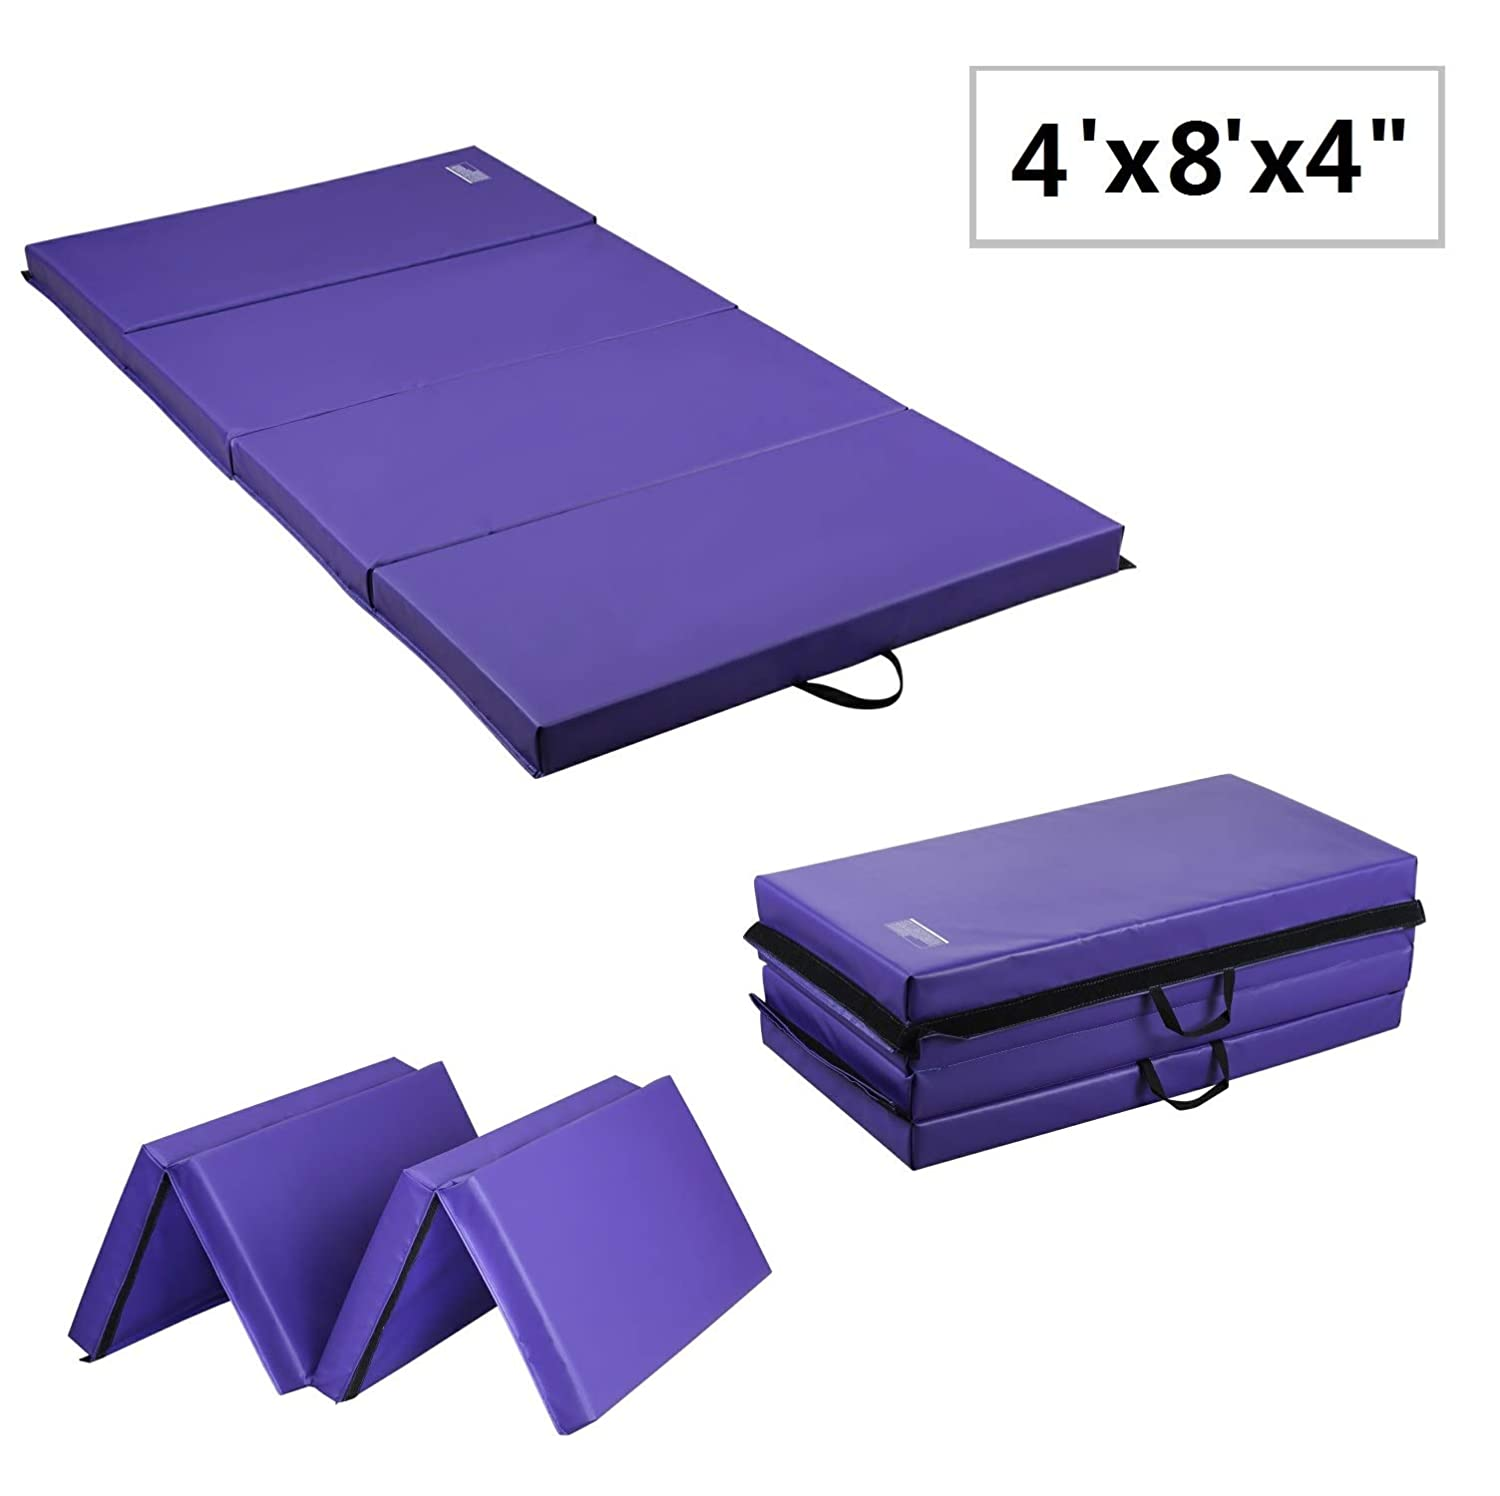 LEISURELIFE Super Thick Folding Gym Mat 4 inch with Carrying Handles for Kids, Blue Purple, PU PVC